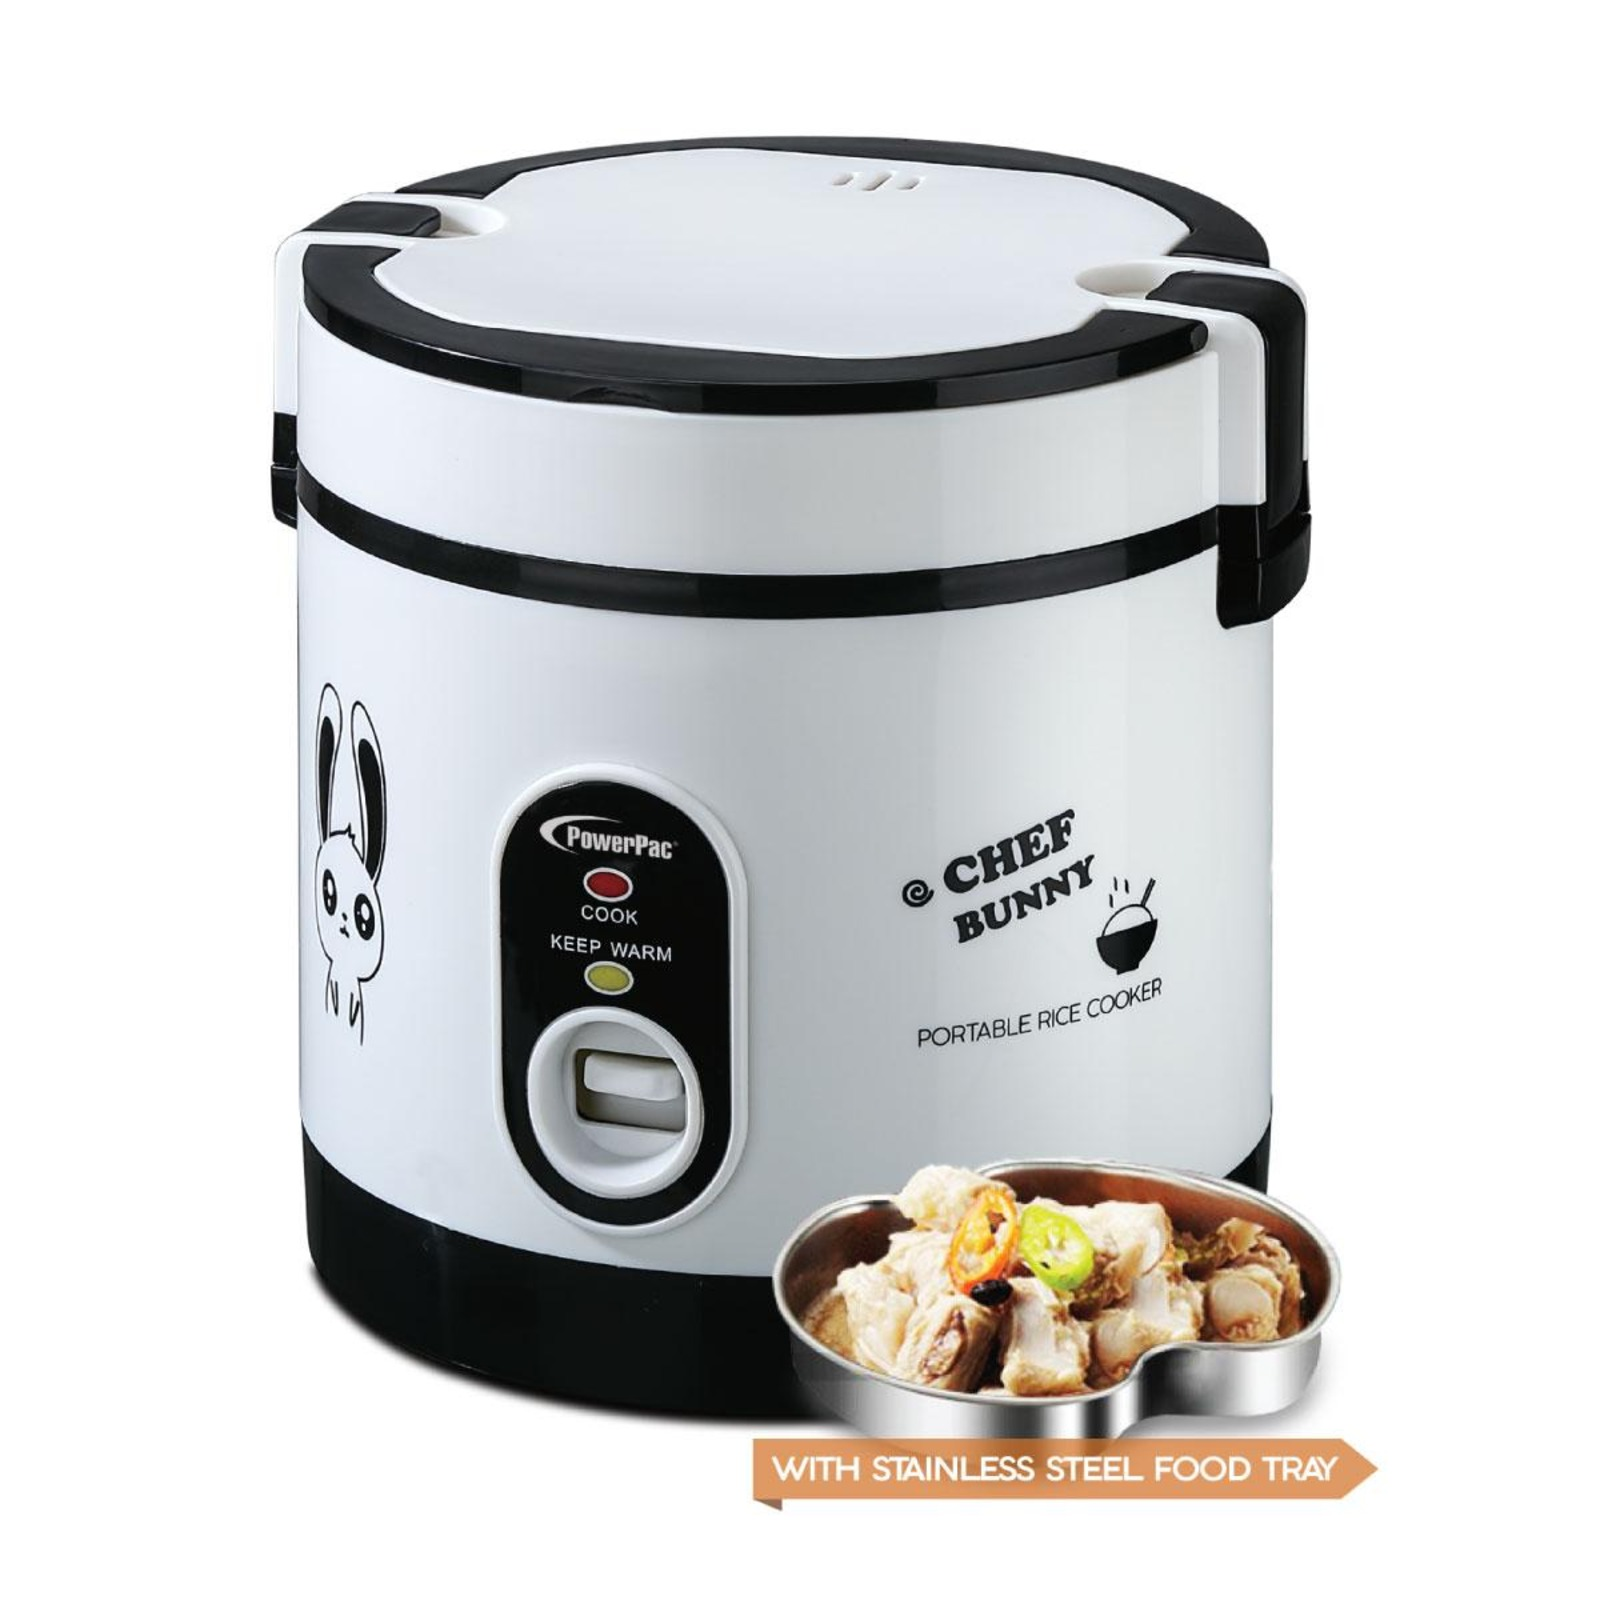 PowerPac (PPRC09) 0.6L Rice Cooker